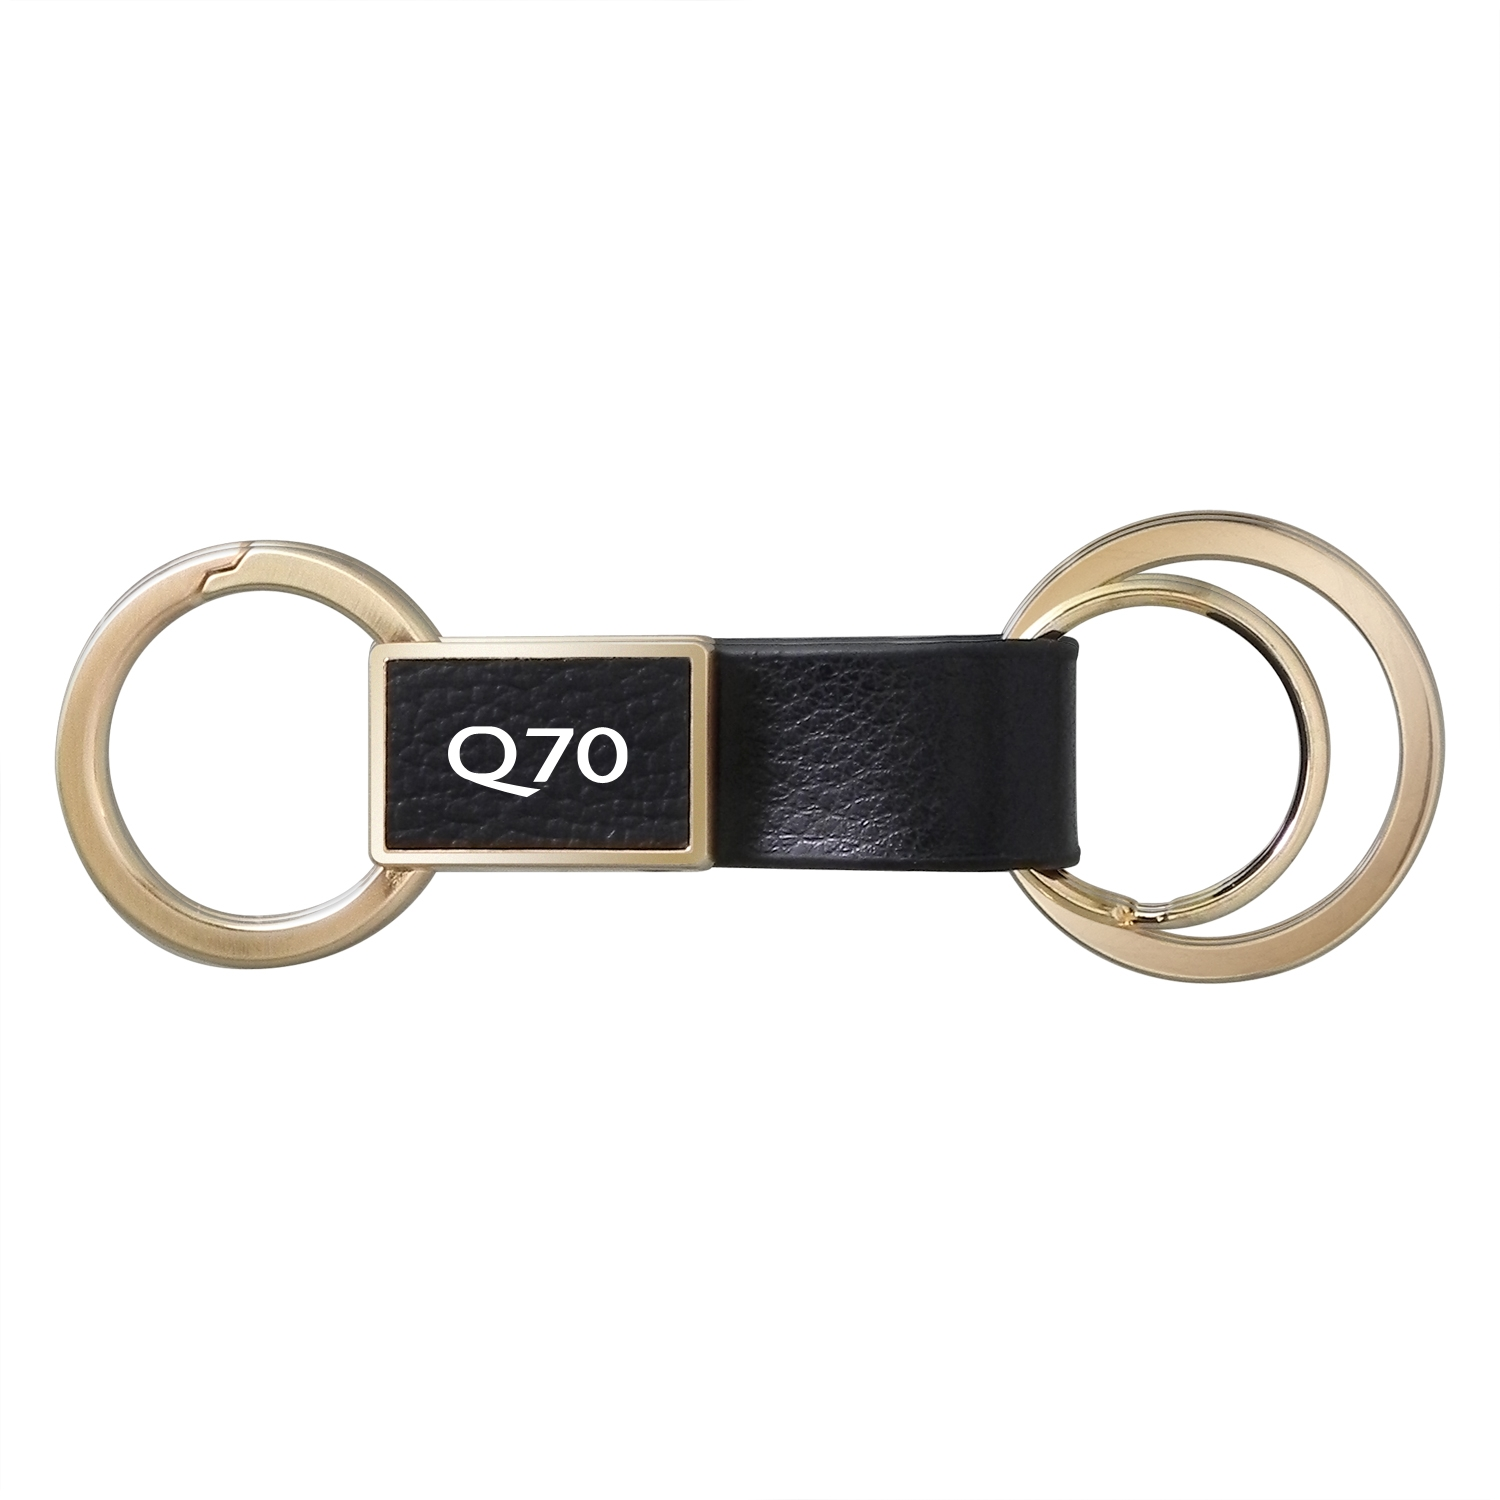 Infiniti Q70 Round Hook Leather Strip Double Ring Golden Metal Key Chain